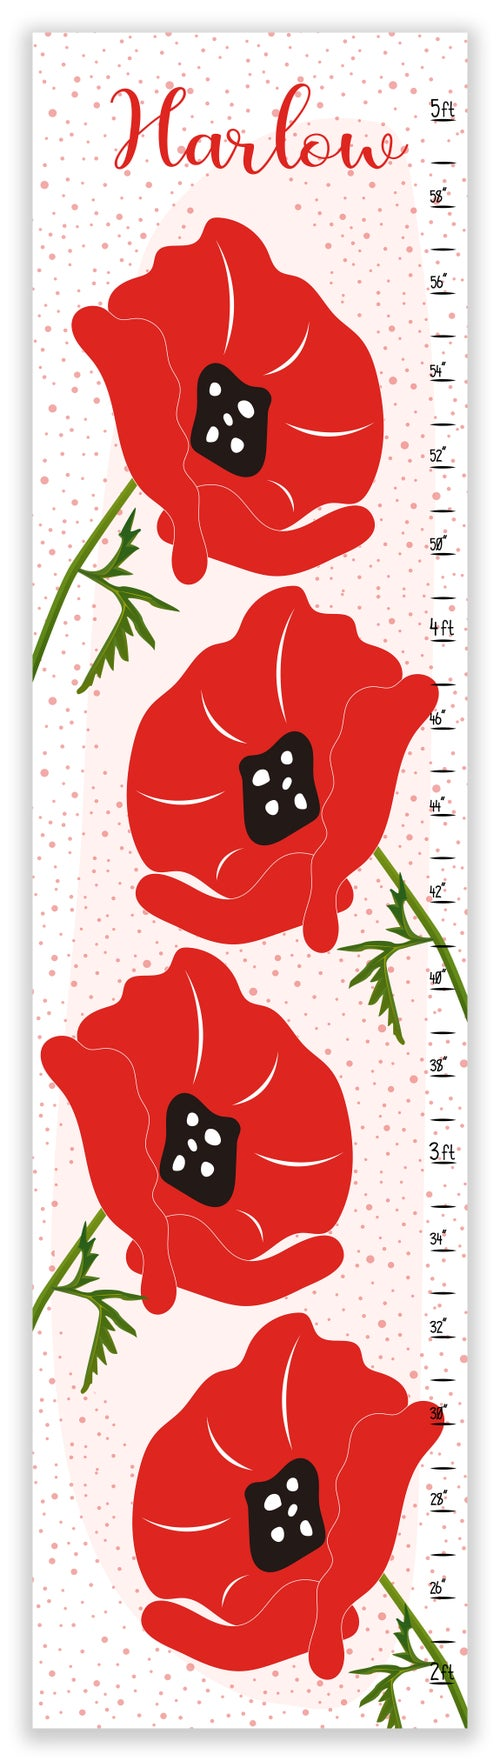 Image of Bright Red Poppies - Personalized Canvas Growth Chart